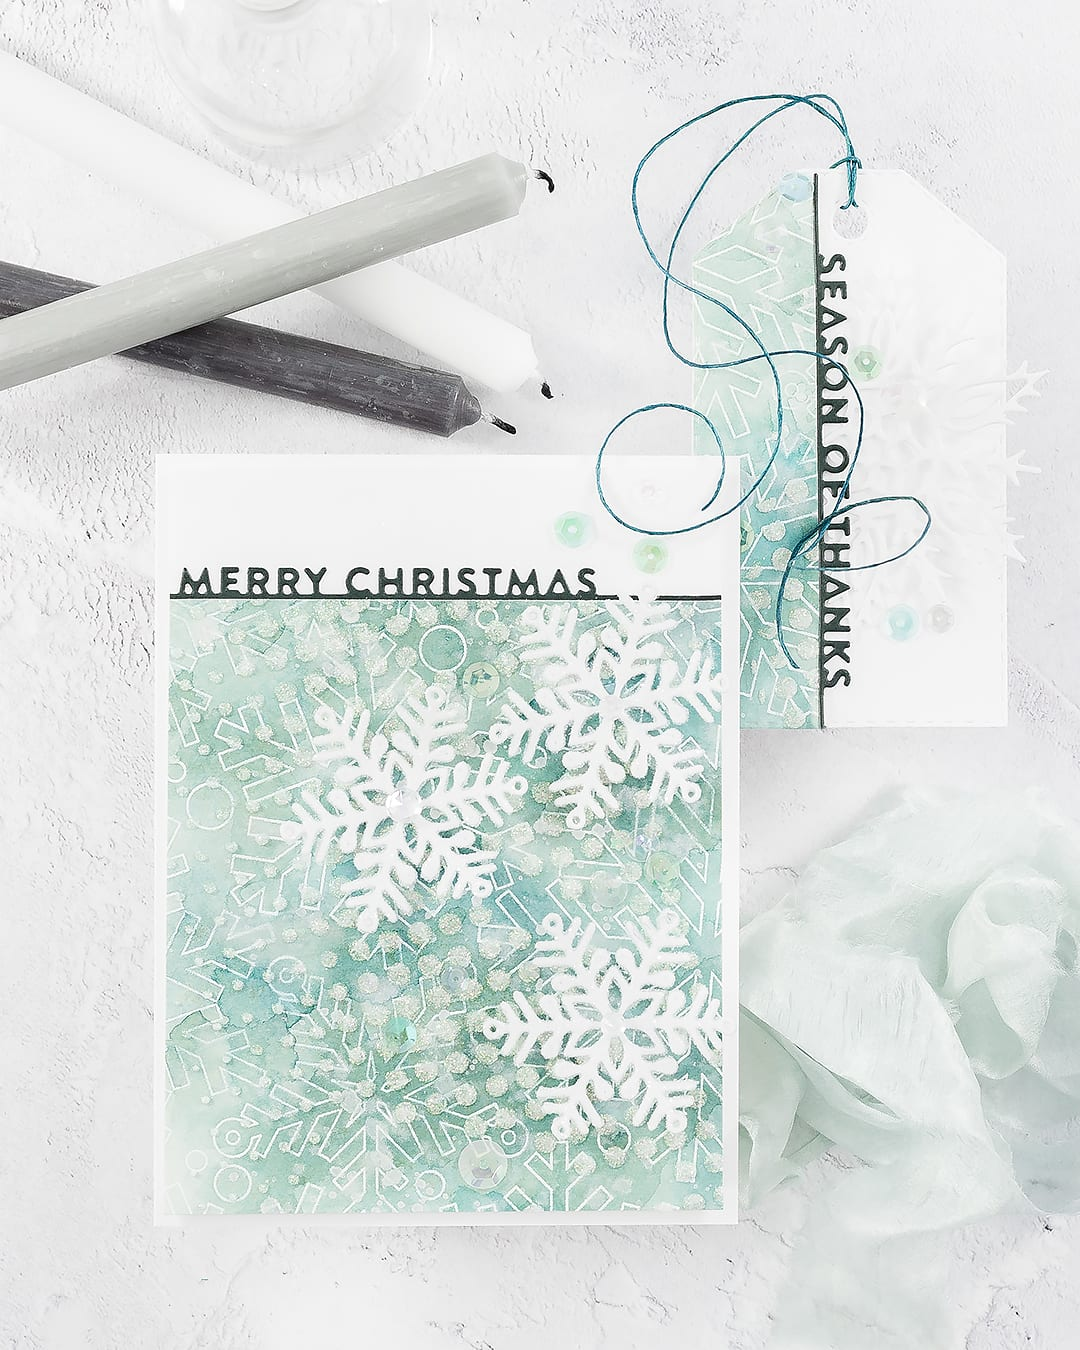 Softly watercoloured, layered snowflake background handmade Christmas card and tag by Debby Hughes. Find out more here: https://limedoodledesign.com/2018/11/video-watercoloured-layered-snowflake-background/